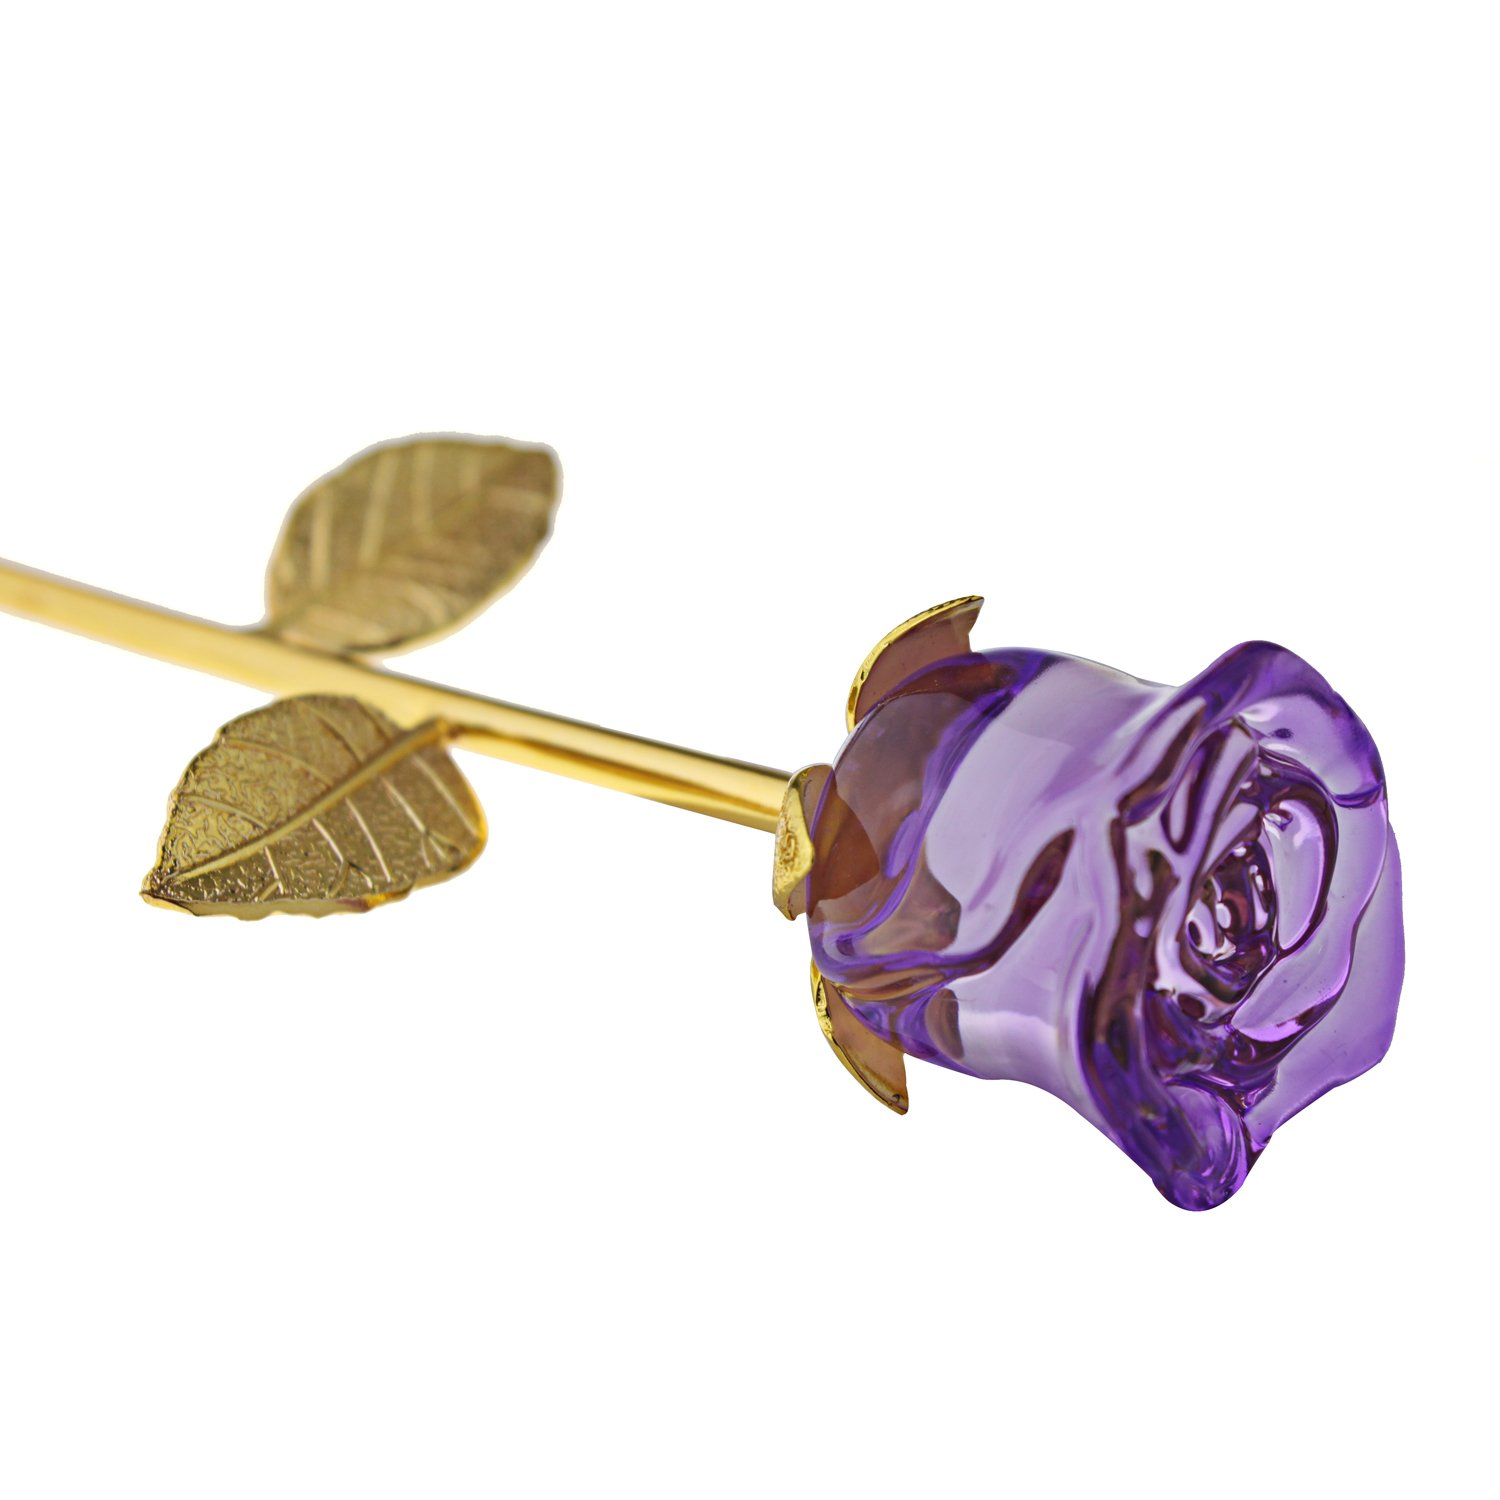 YUYIKES-9-Inches-Romantic-Love-Forever-in-Bud-Purple-Crystal-Rose-Flower-Best-Gift-for-Valentines-Day-Mothers-Day-Anniversary-Birthday-Gift-Home-Wedding-Decoration-Purple